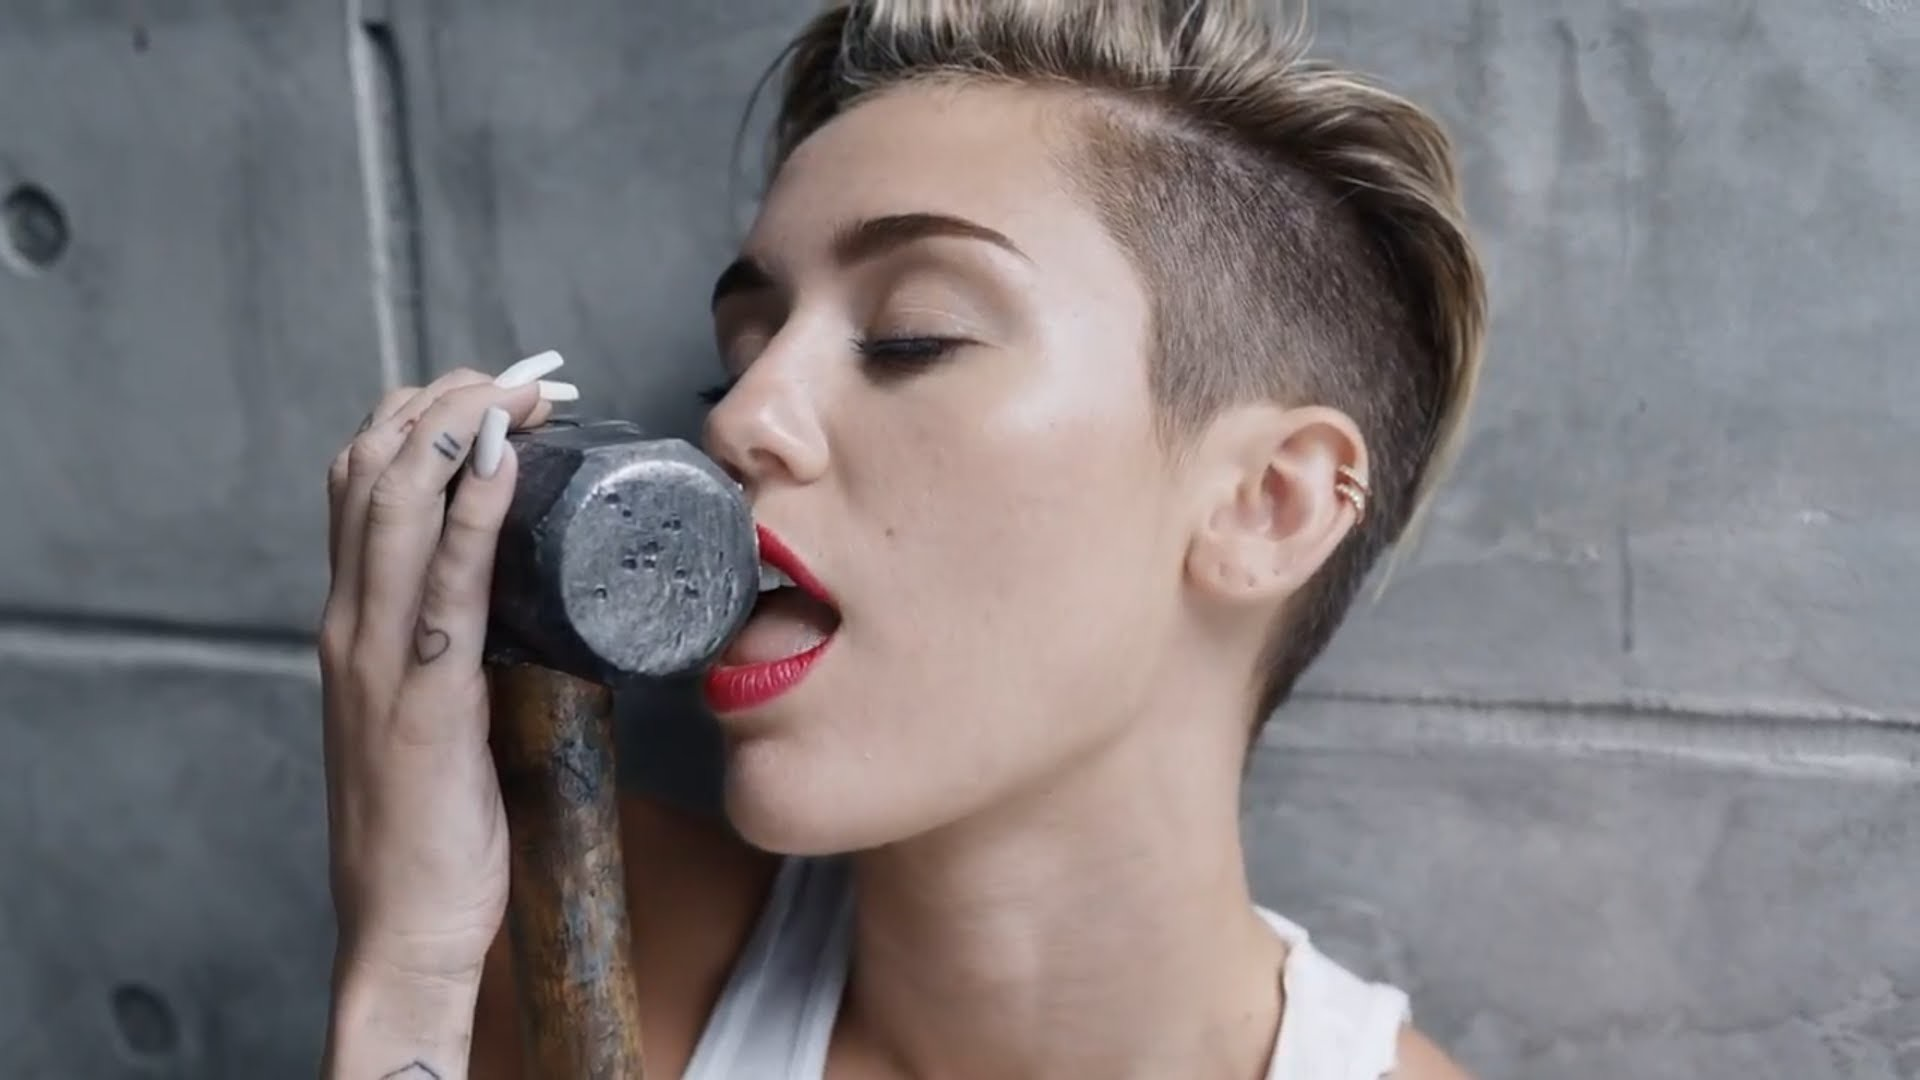 1920x1080 Miley Cyrus Wrecking Ball Tumblr